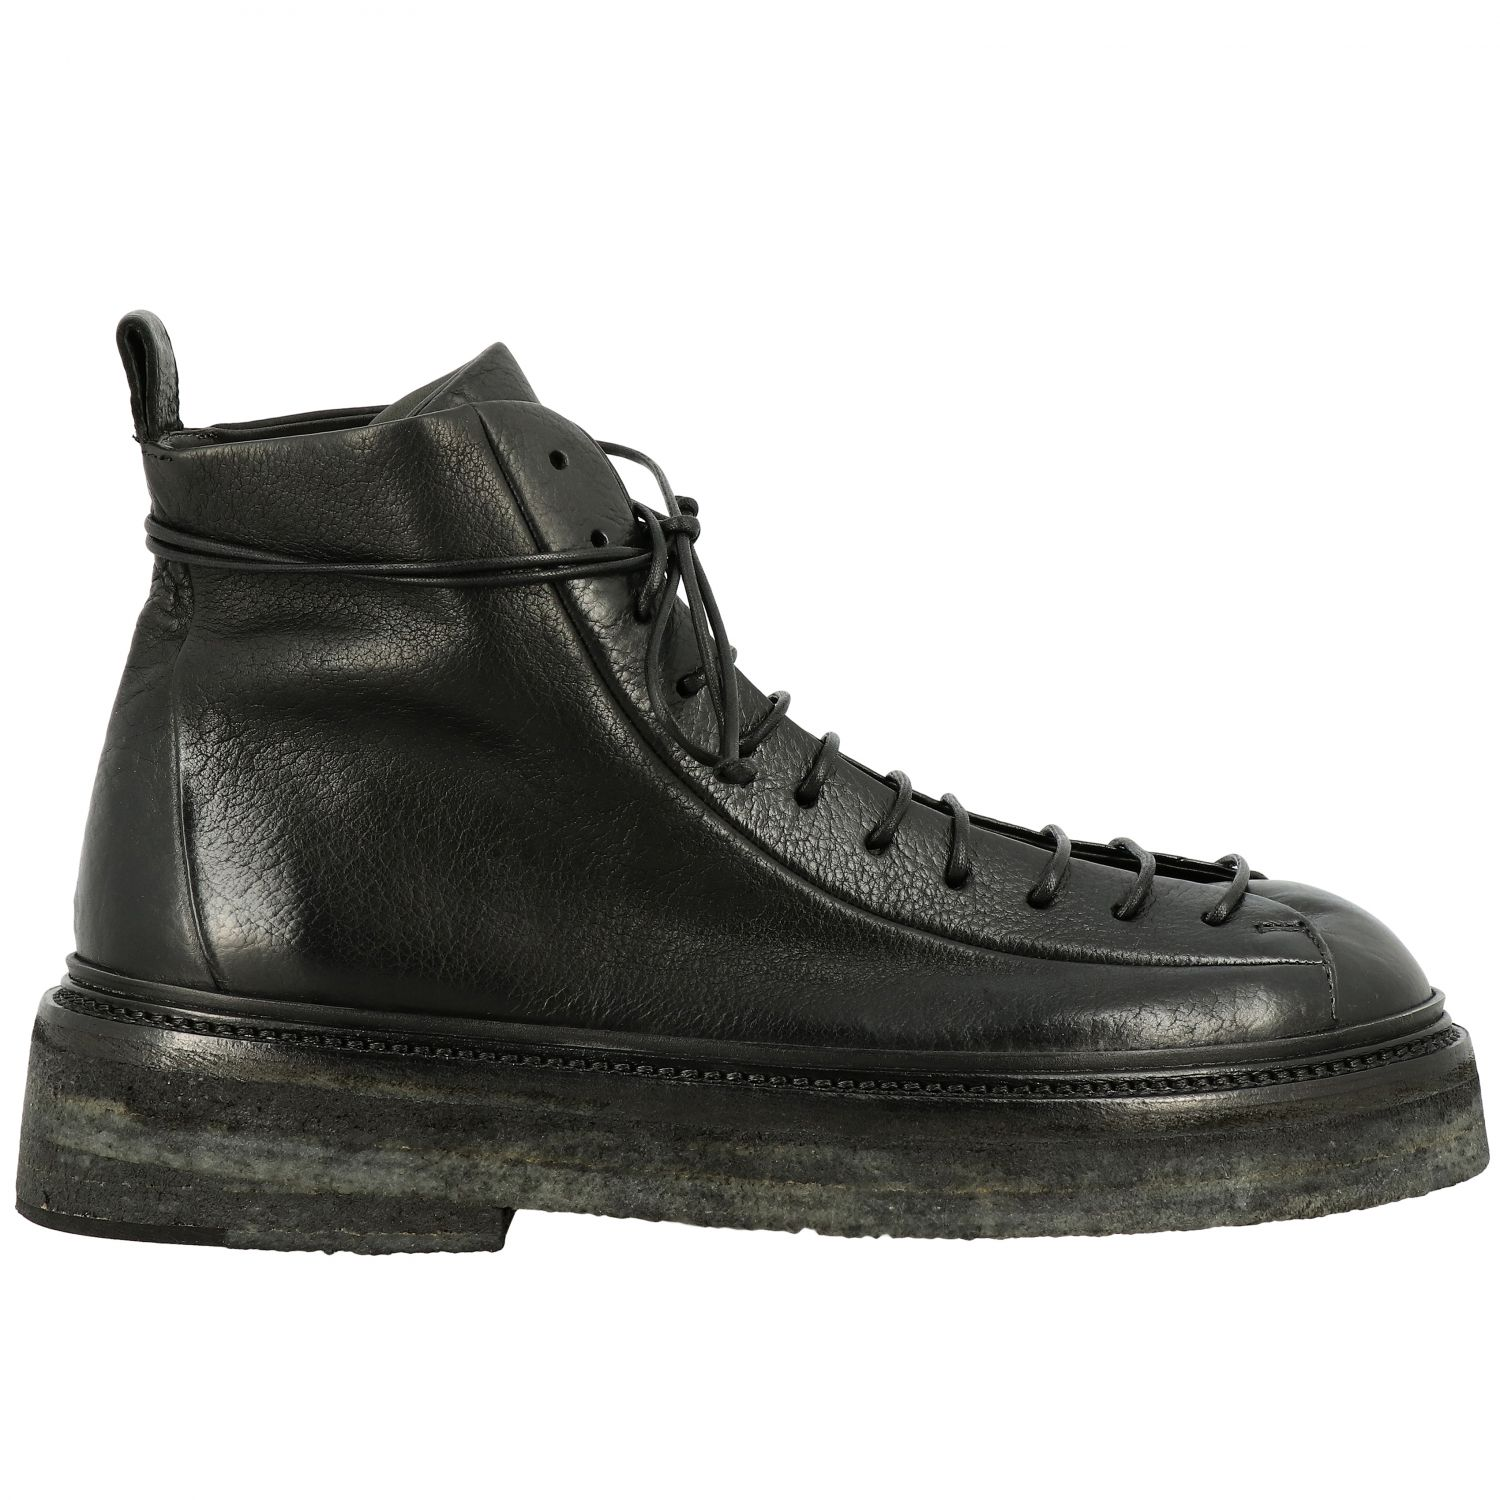 Derby Pedula Parruccona Marsell in pelle nero 1